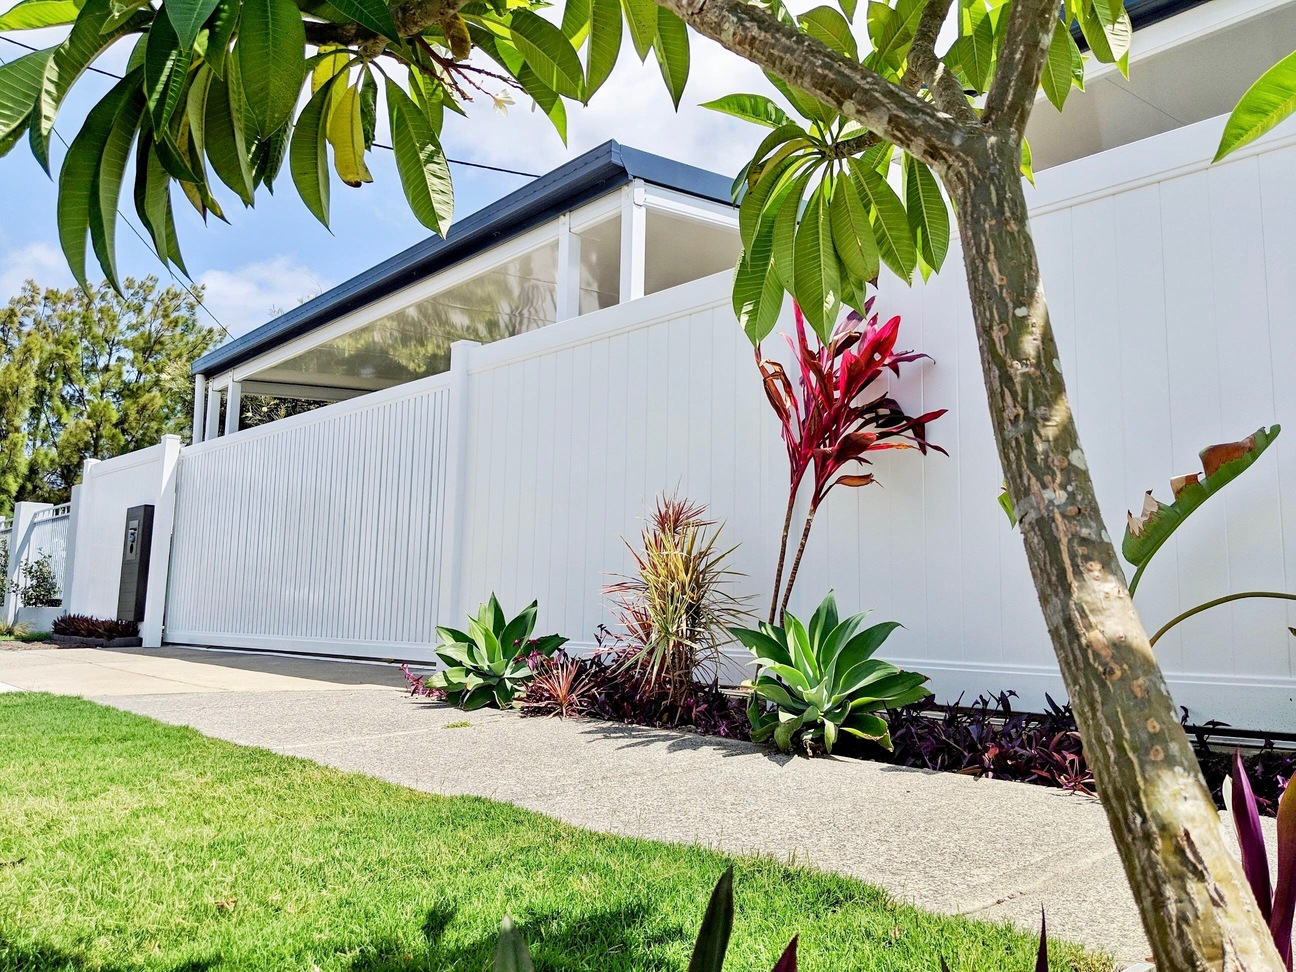 Full Privacy Fencing and Semi Privacy Sliding Gate